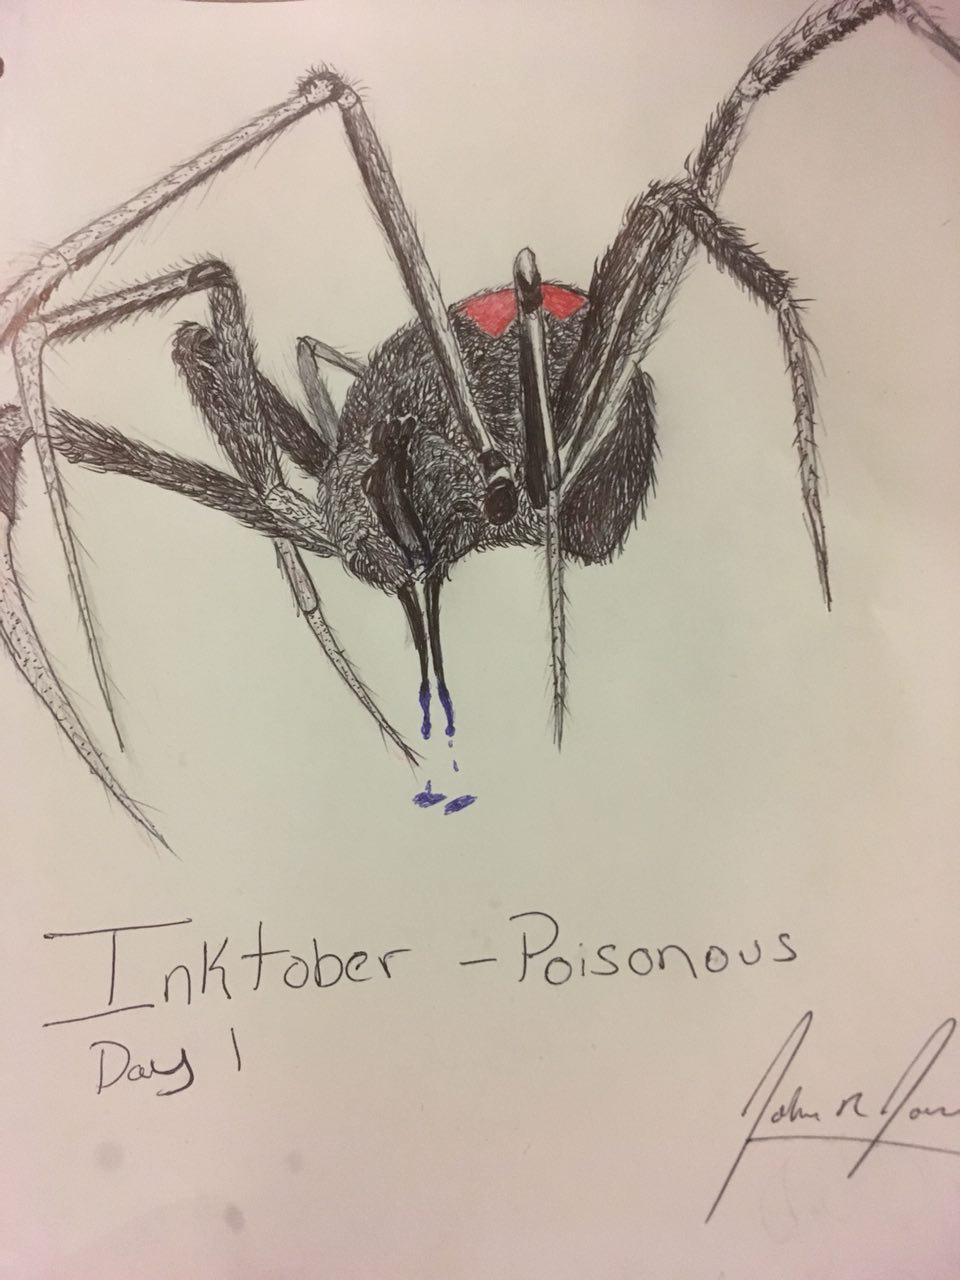 Inktober Day 1 - Poisonous